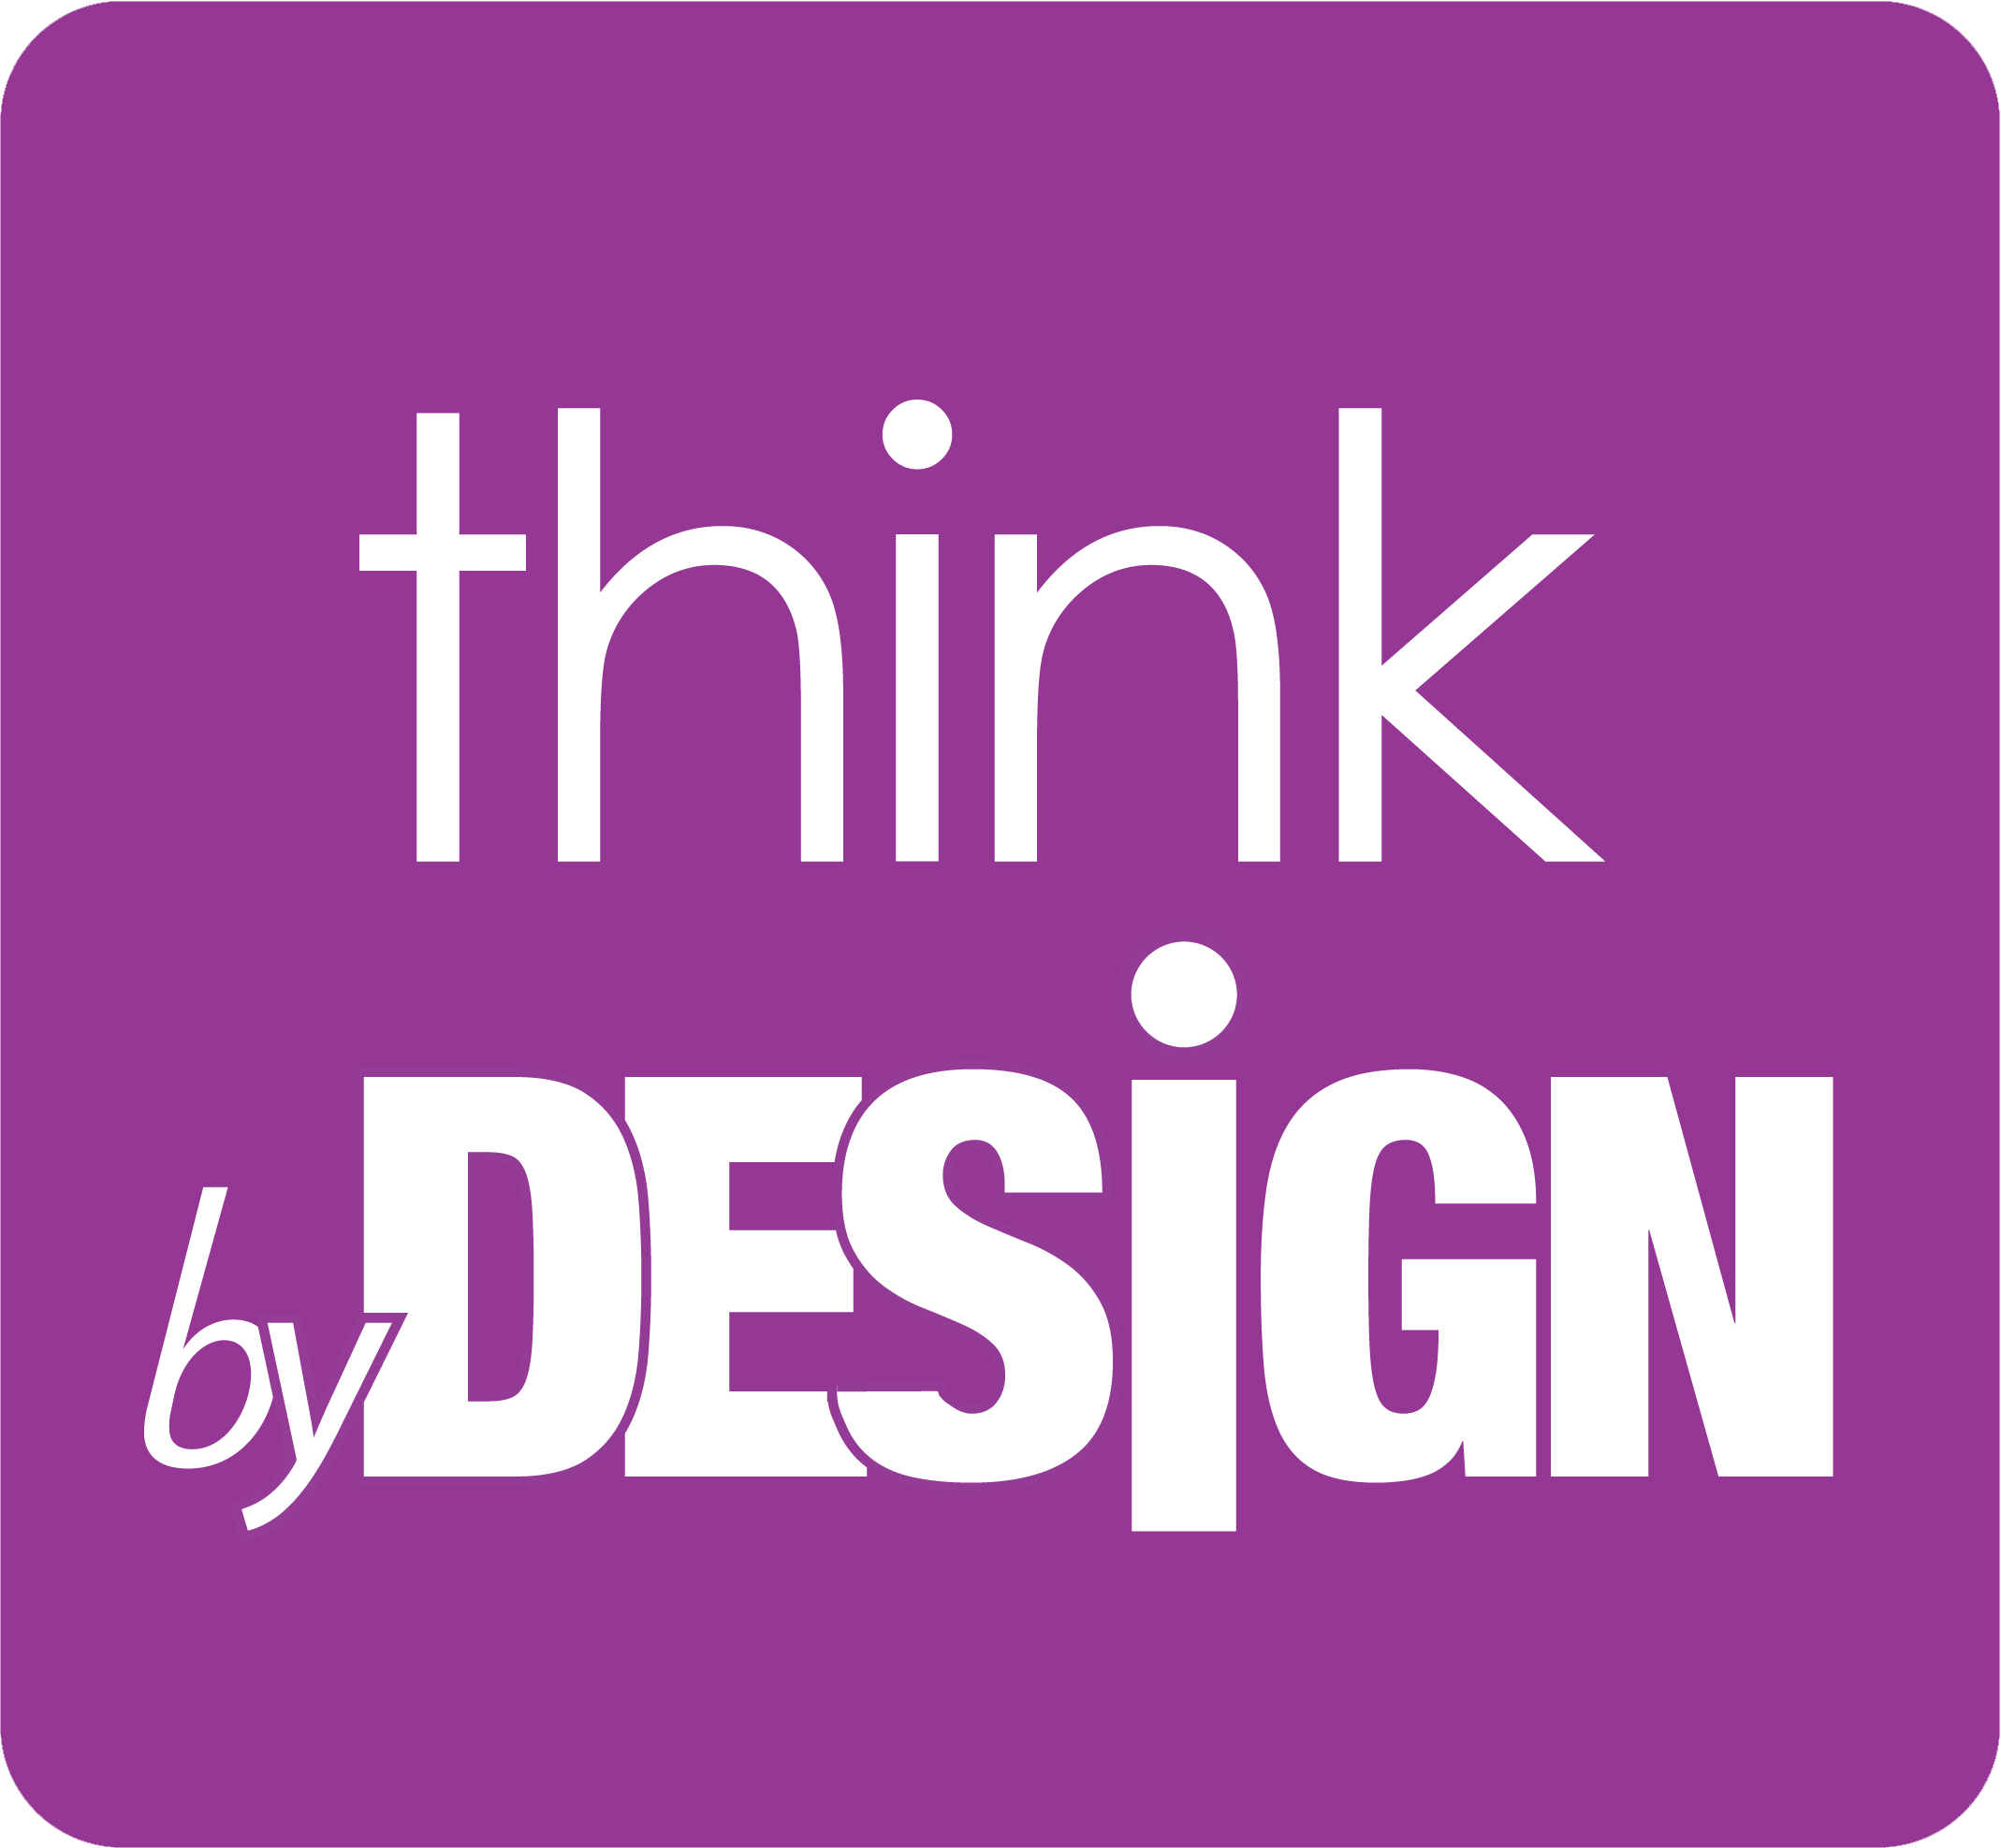 think by design